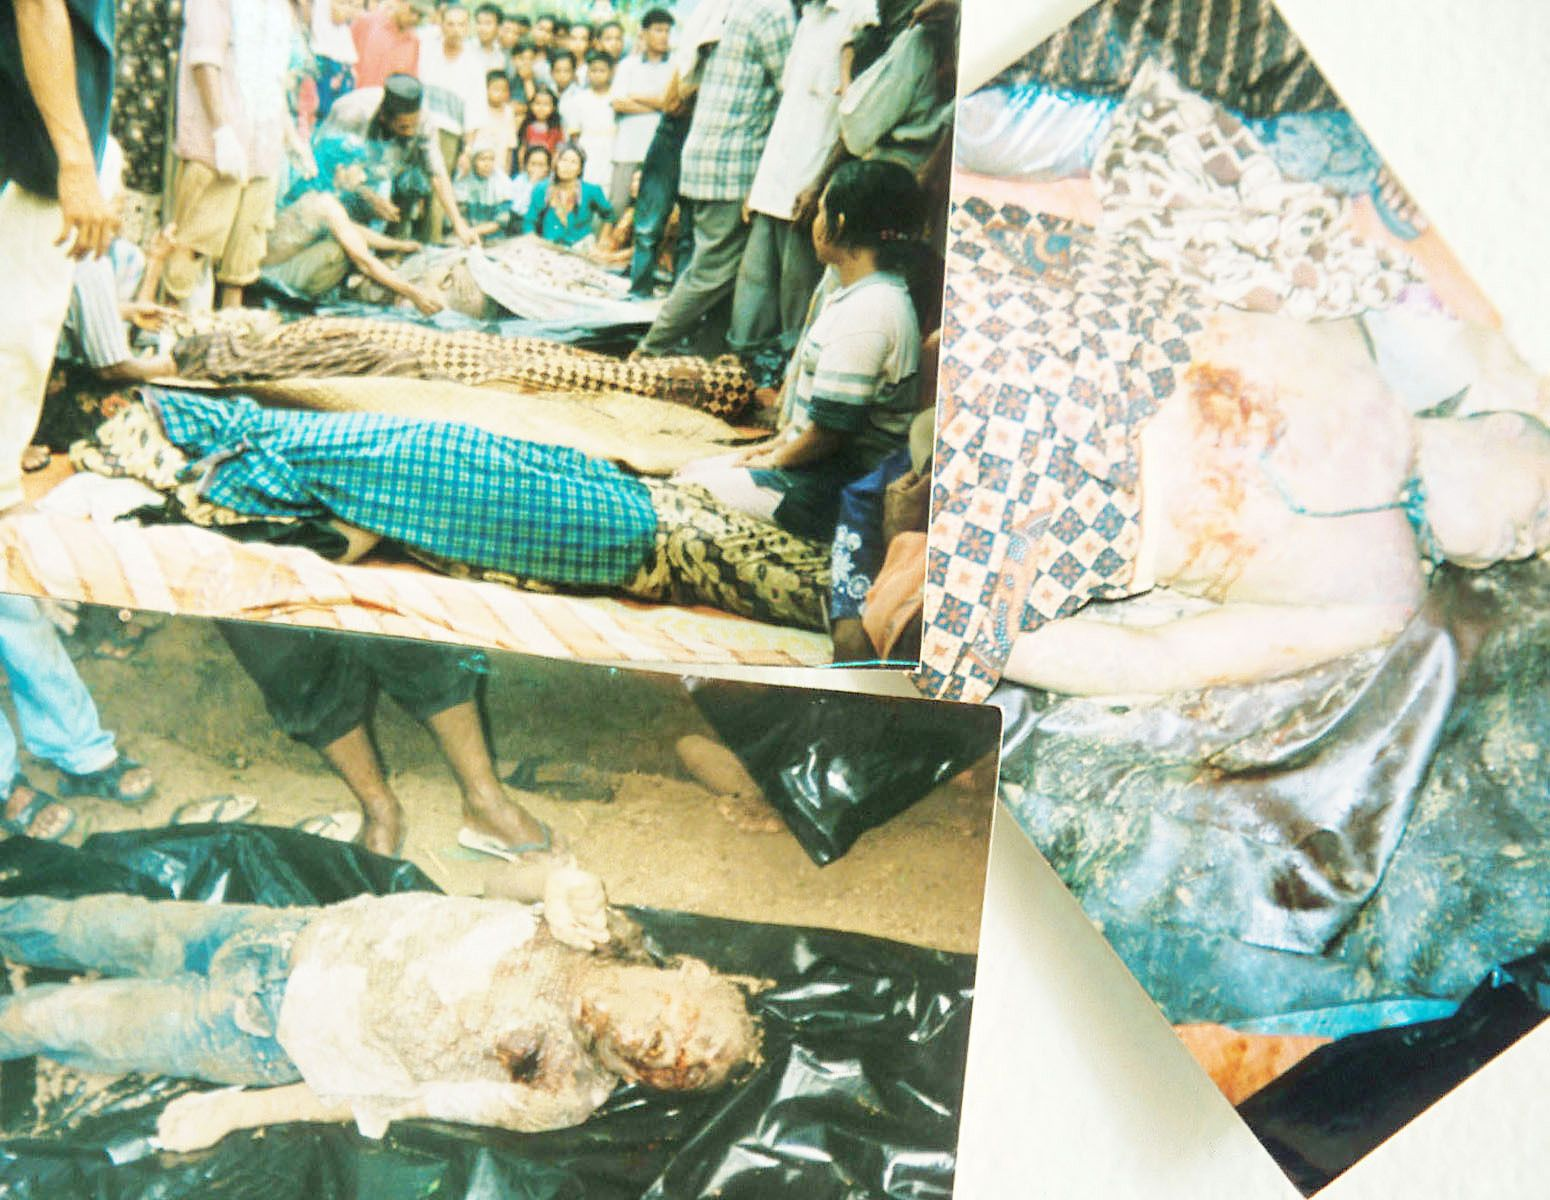 Nine people, suspected to be members of Free Aceh Movement (GAM), were abducted by Indonesian soldiers on August 19th, and executed.When their family members found the bodies, all the victims wereburied together.